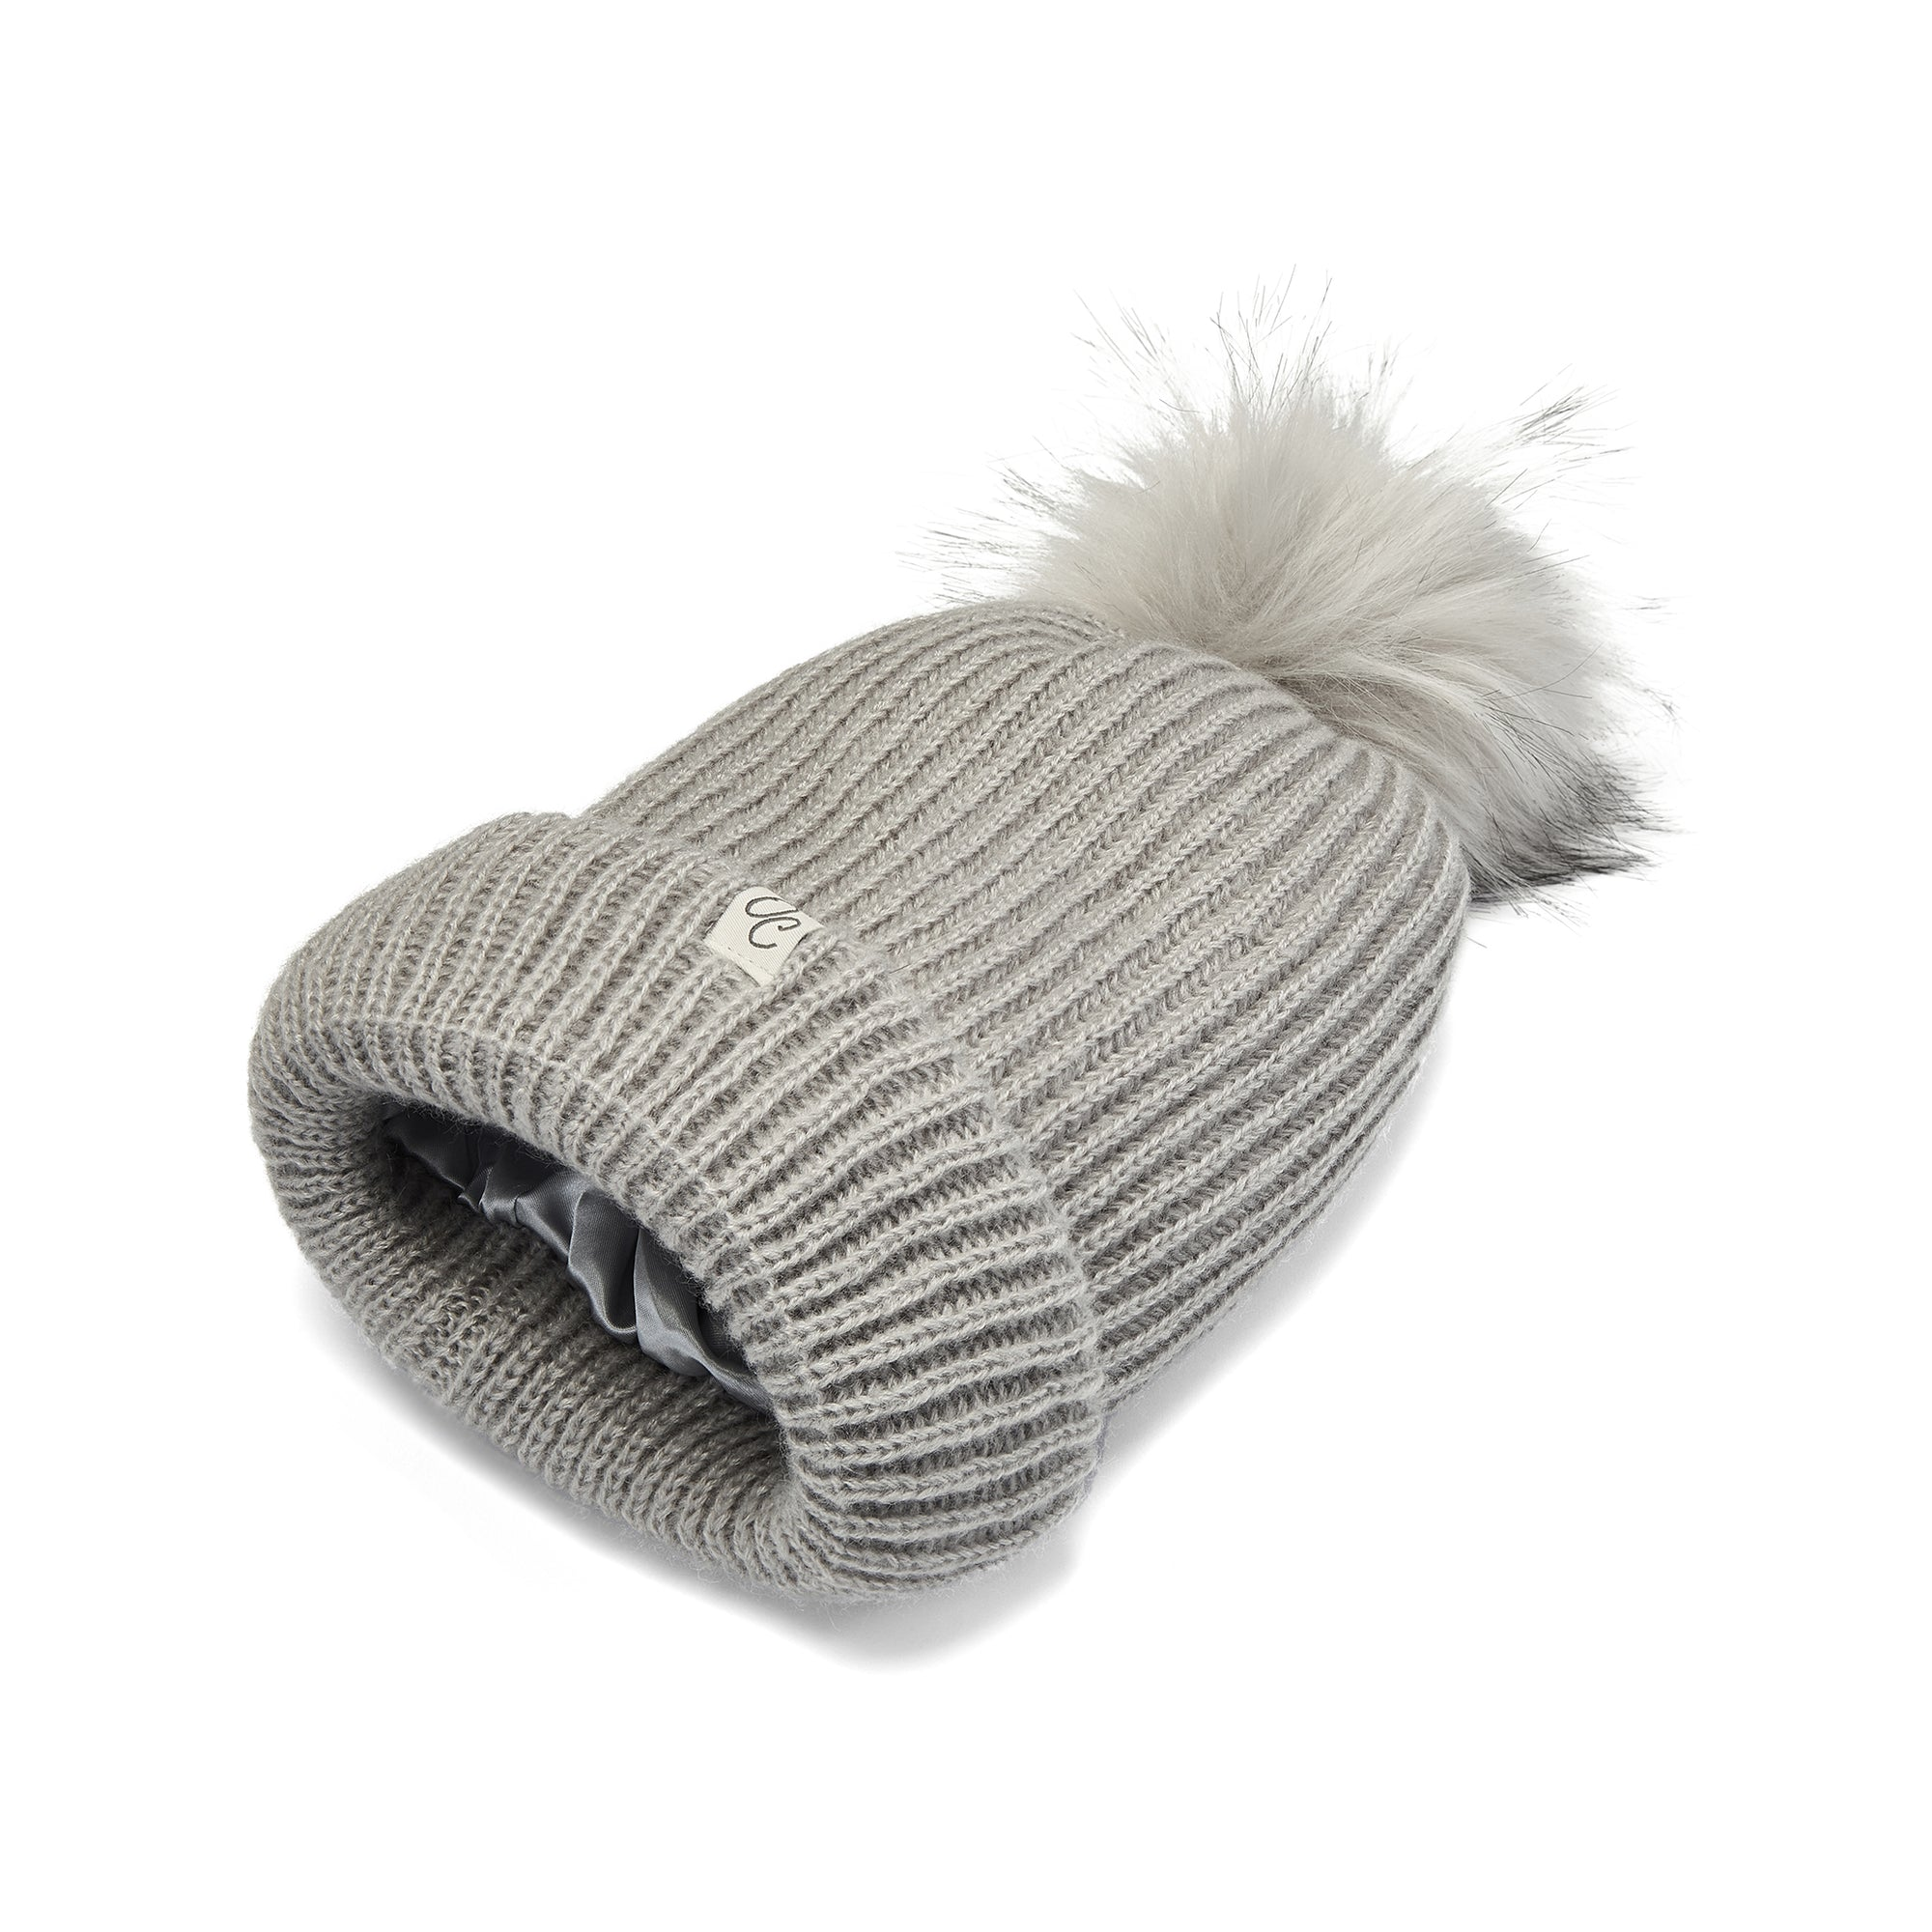 Only Curls Grey Satin Lined Knitted Beanie Hat with pom pom and showing the lining